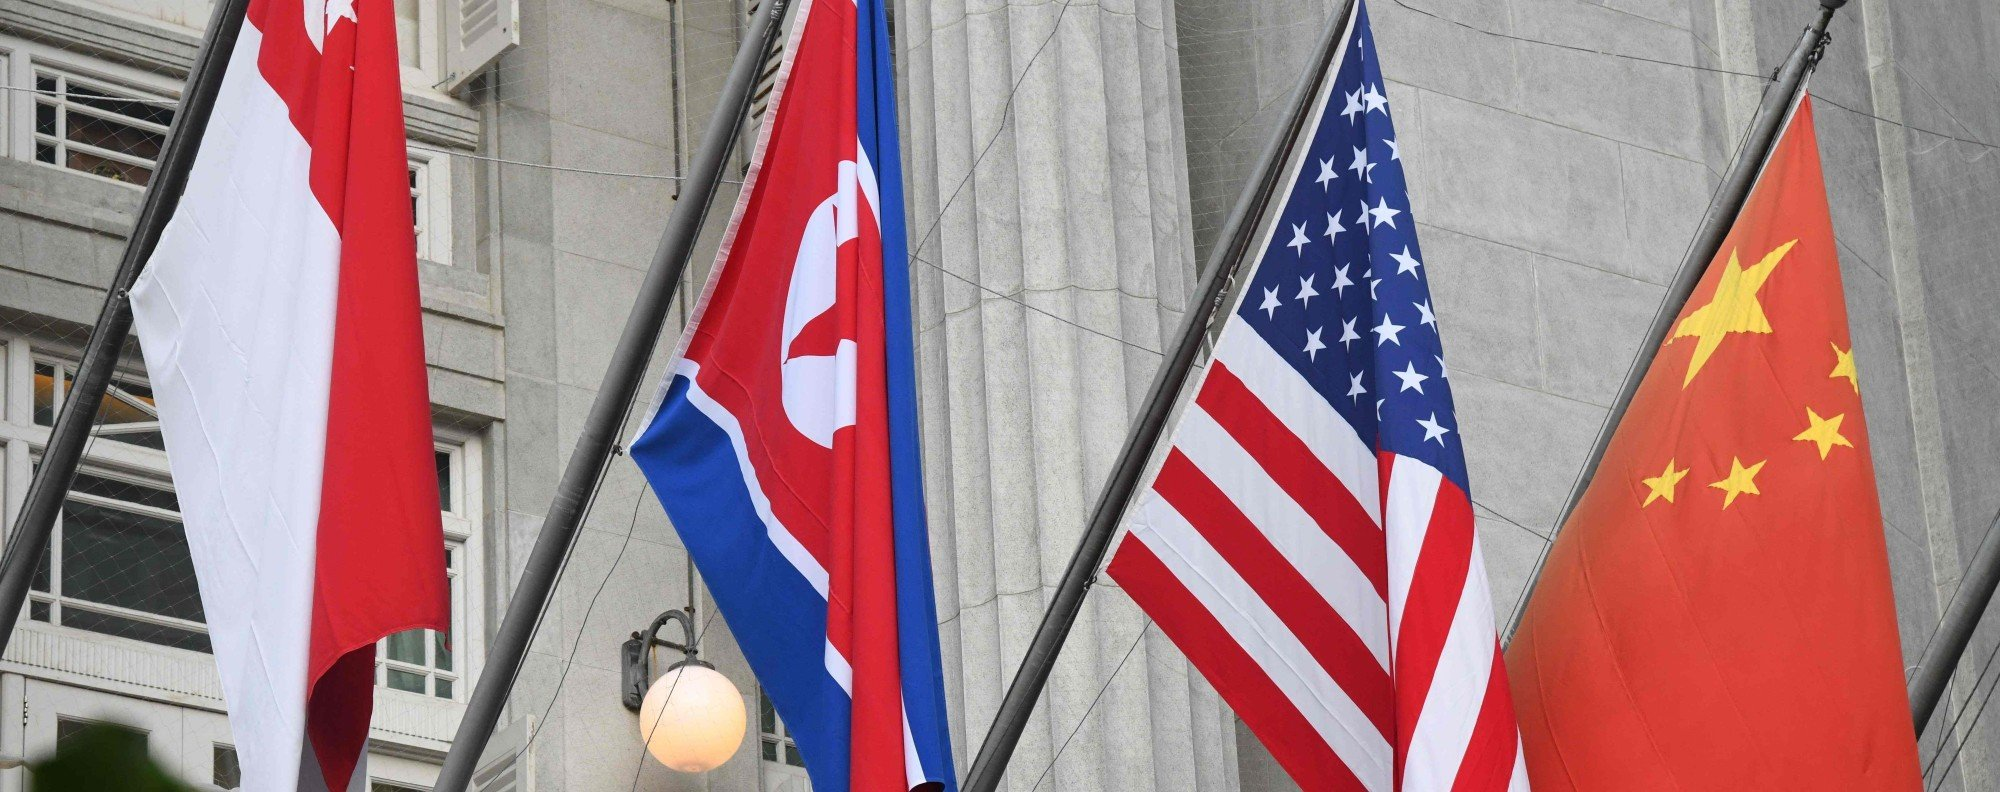 North Korean flag is seen along side the US, China and Singapore flags at the facade of the Fullerton hotel in Singapore. Photo: AFP